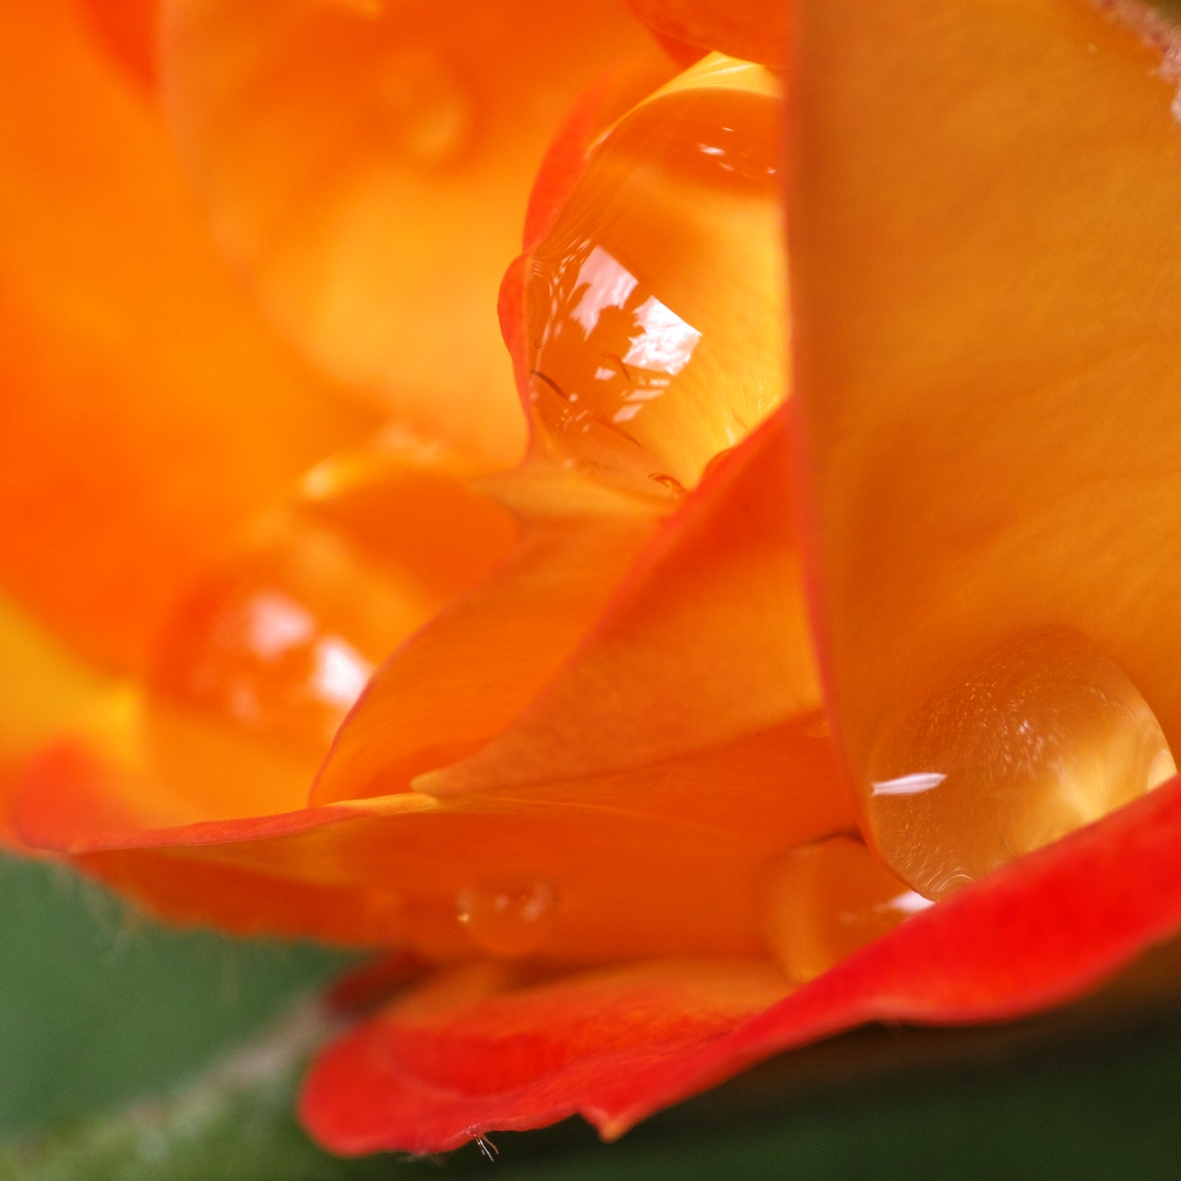 water drops on rose petals.jpg